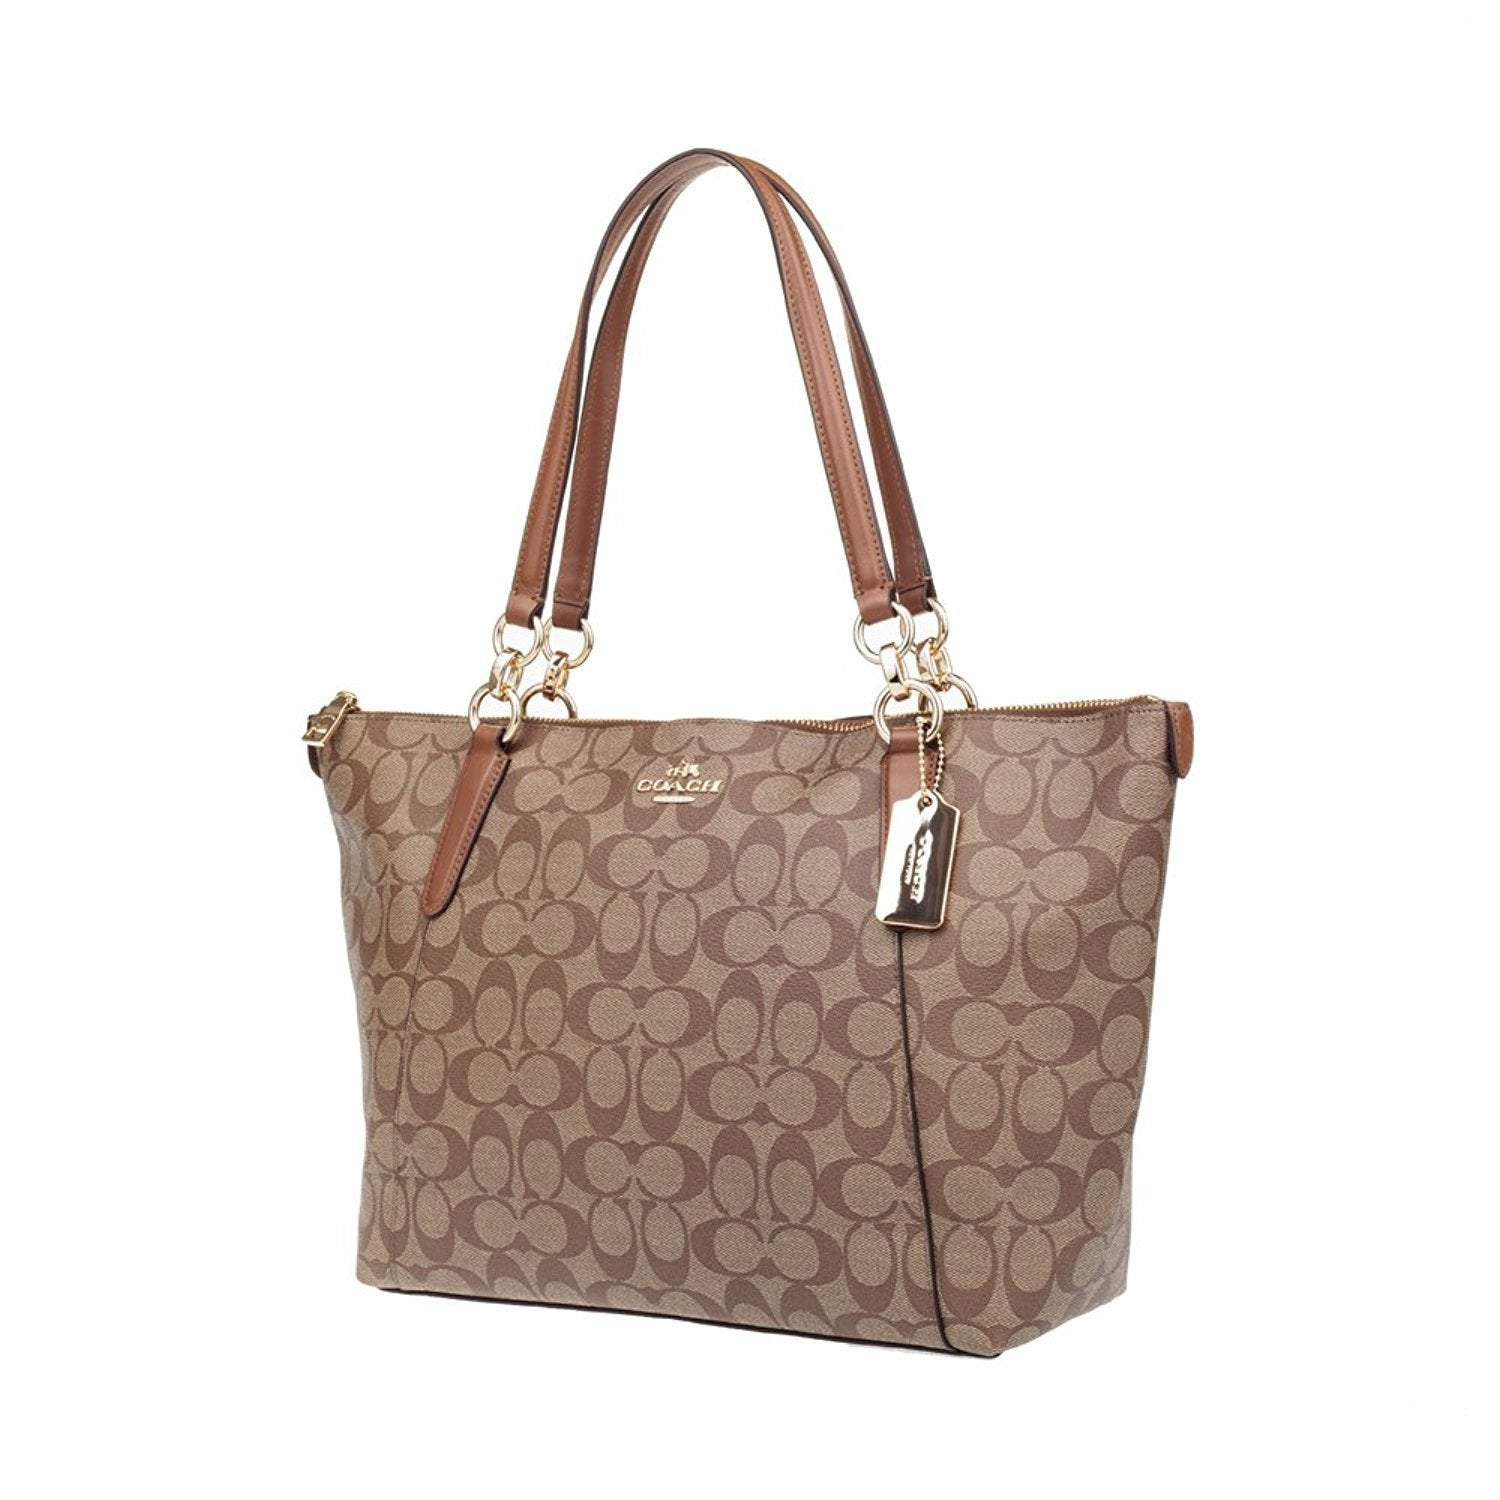 75bf417582cc Discount Coach Handbags   Purse with Free Shipping by Watchcove